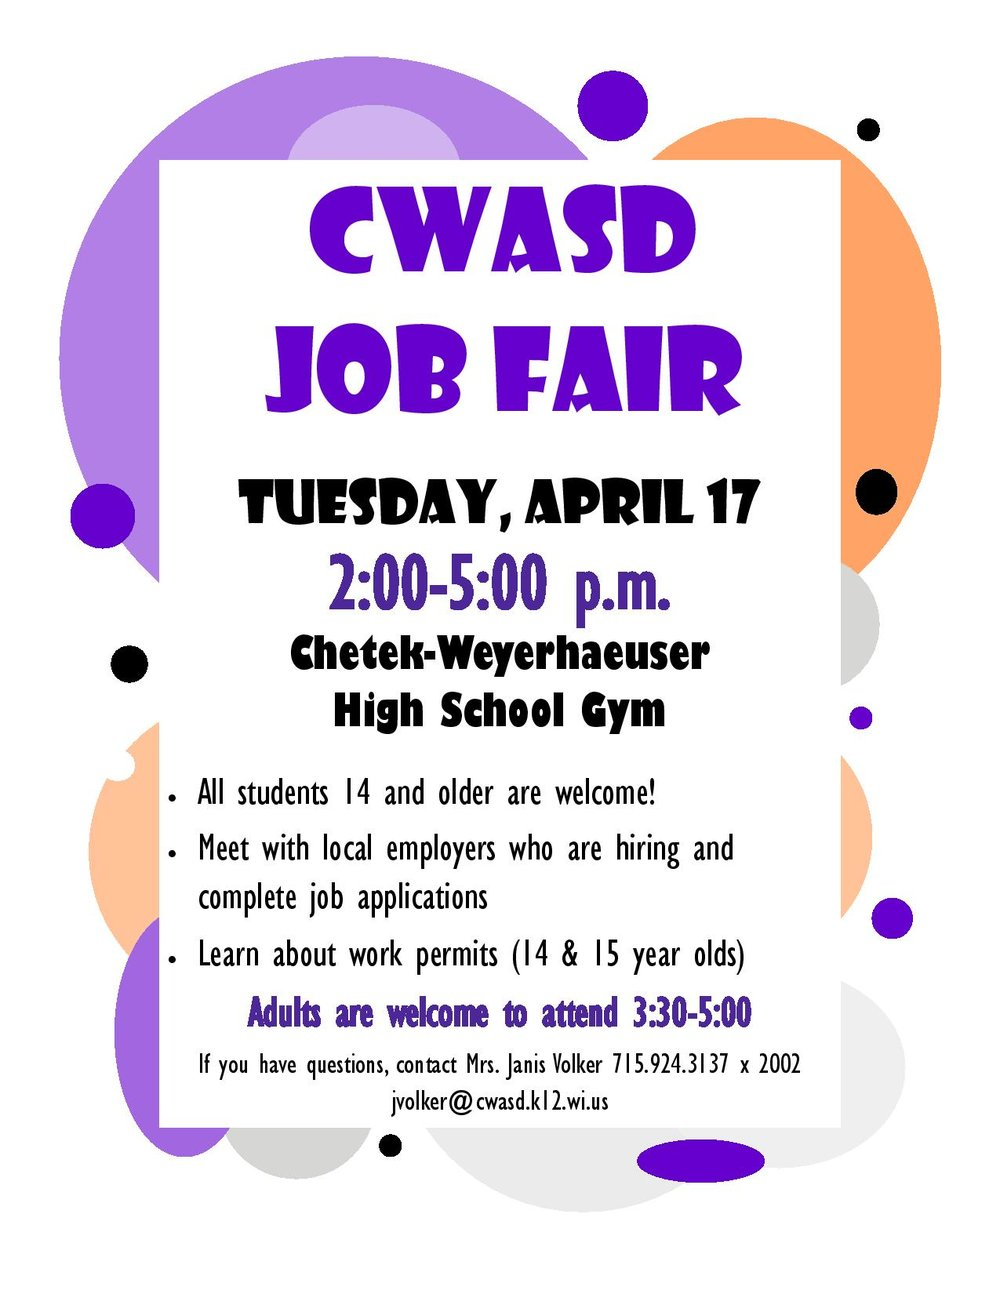 CWASD Job Fair 2018-page-001.jpg